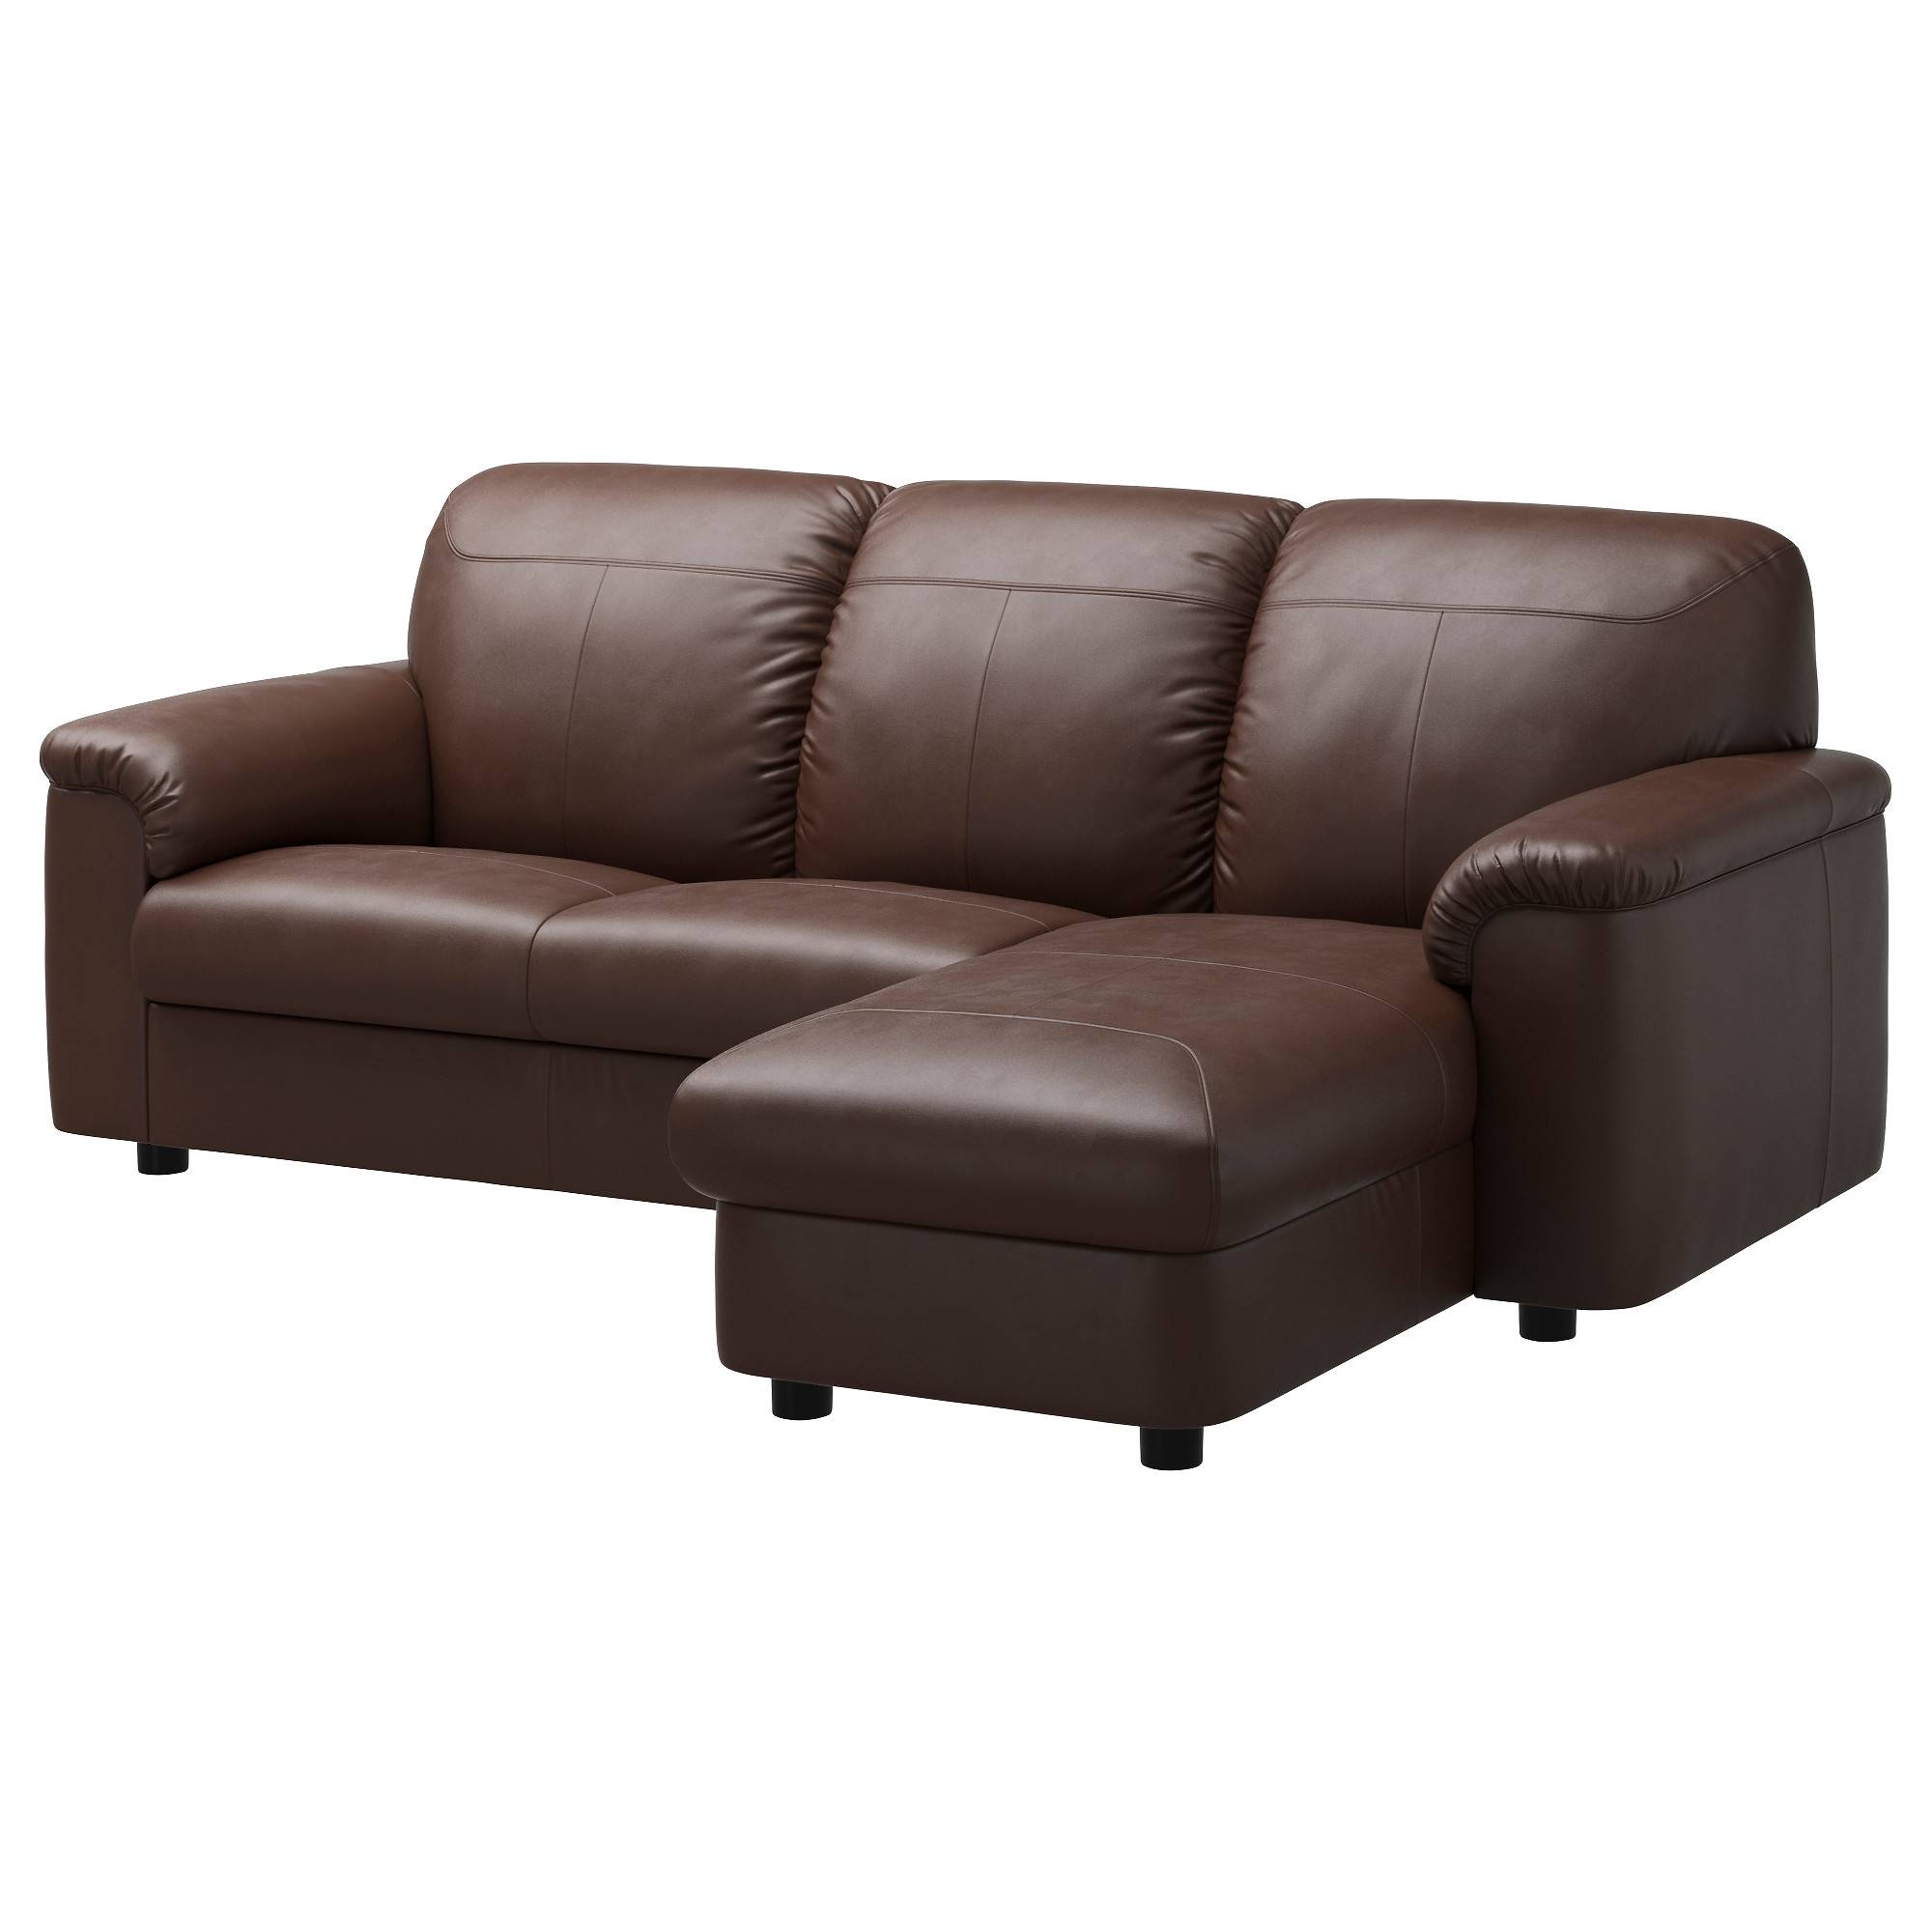 Leather & Faux Leather Couches, Chairs & Ottomans - Ikea intended for Leather Lounge Sofas (Image 12 of 30)